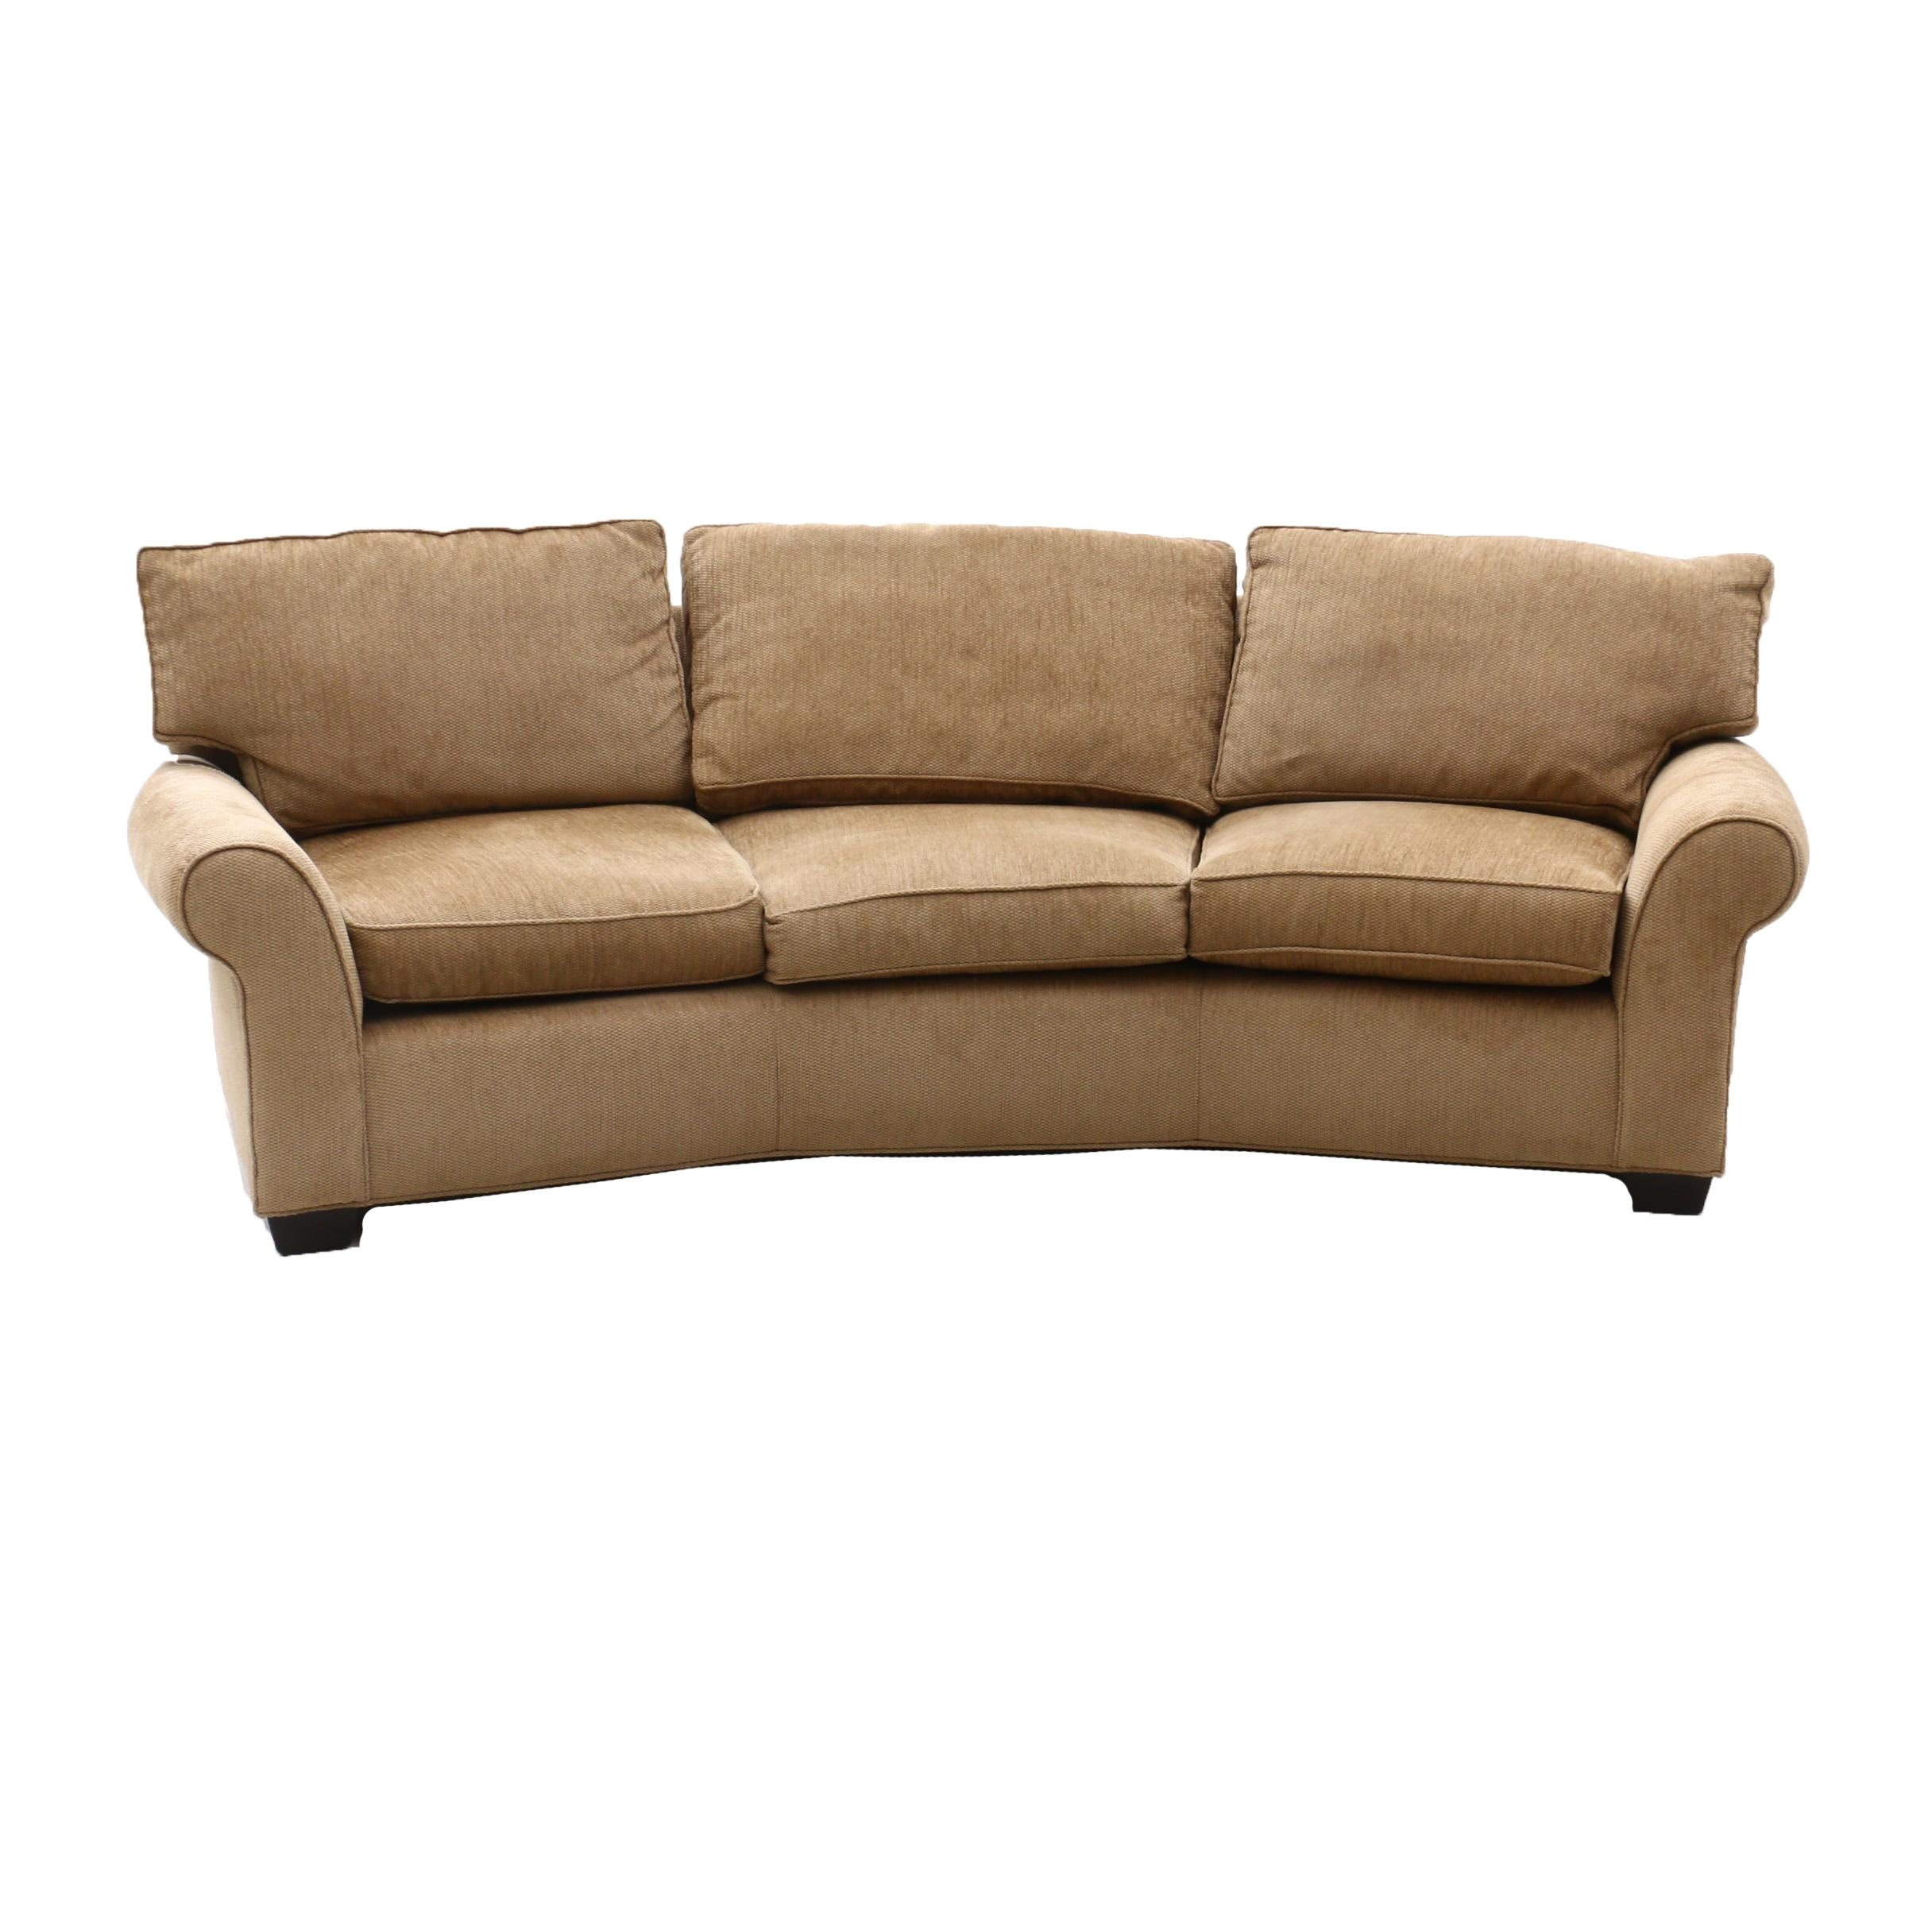 Contemporary Arhaus Arched Upholstered Sofa